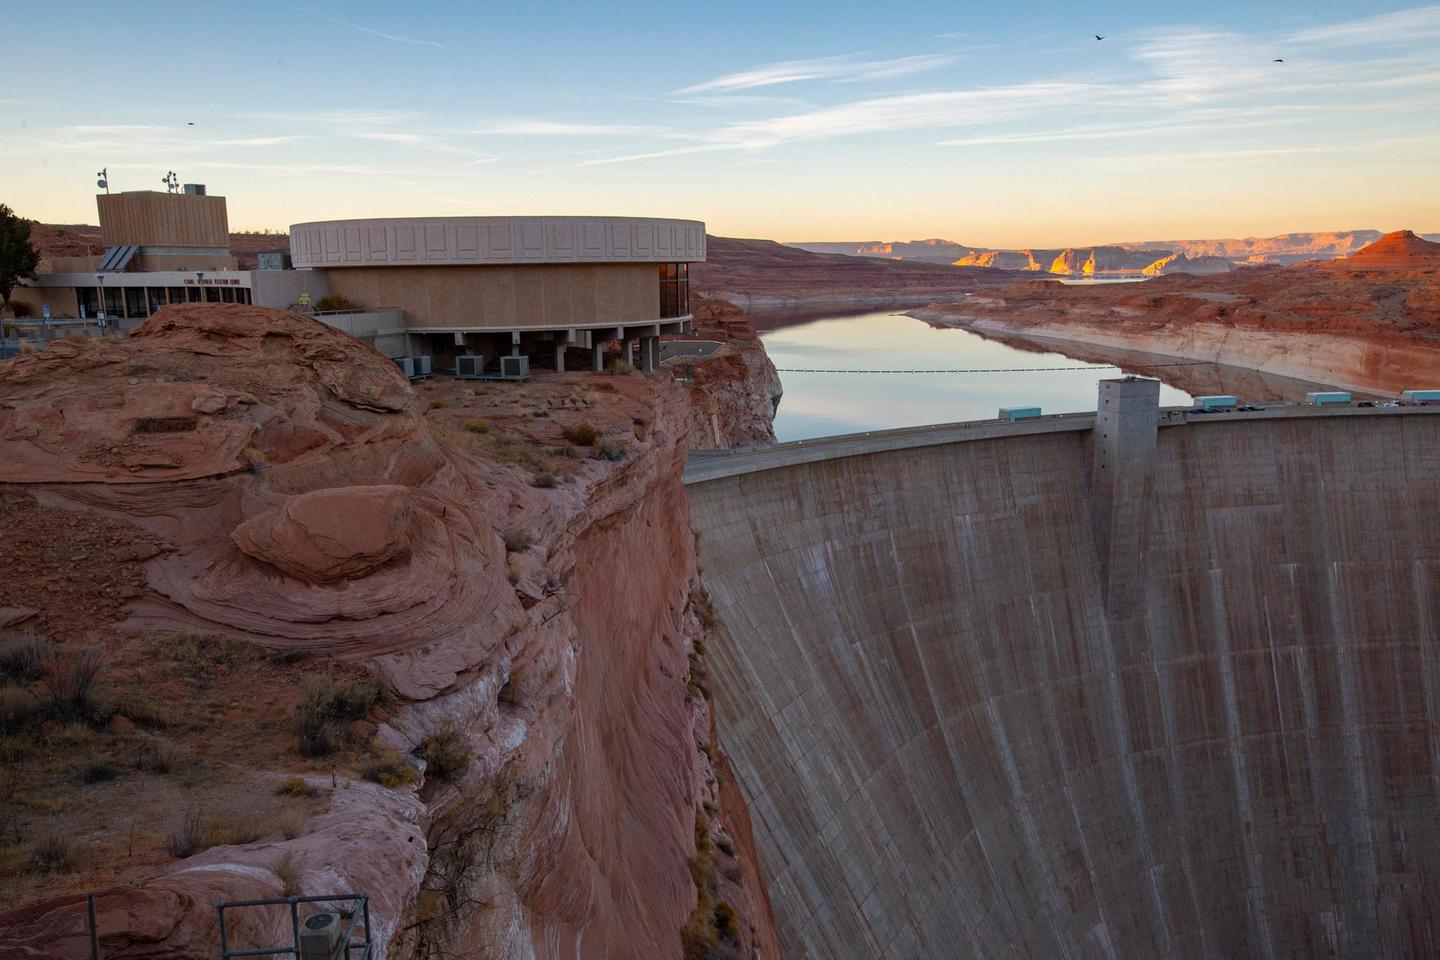 Carl Hayden Visitor Center And Glen Canyon Dam From Glen Canyon BridgeTours of Glen Canyon dam begin in Carl Hayden Visitor Center.